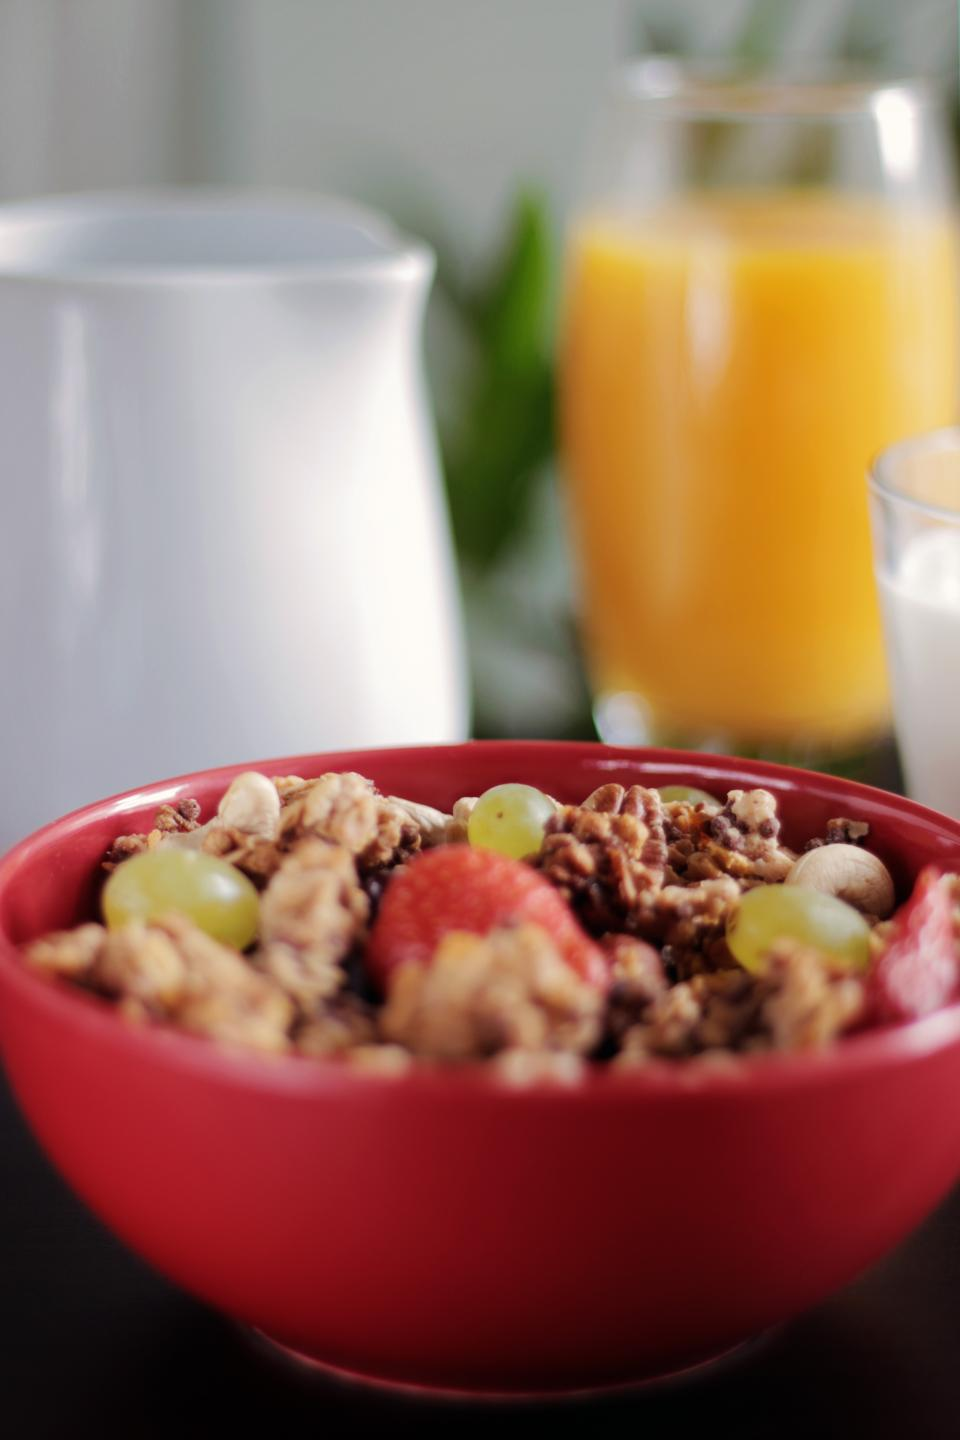 muesli cereal breakfast granola fruits healthy food nuts bowl orange juice